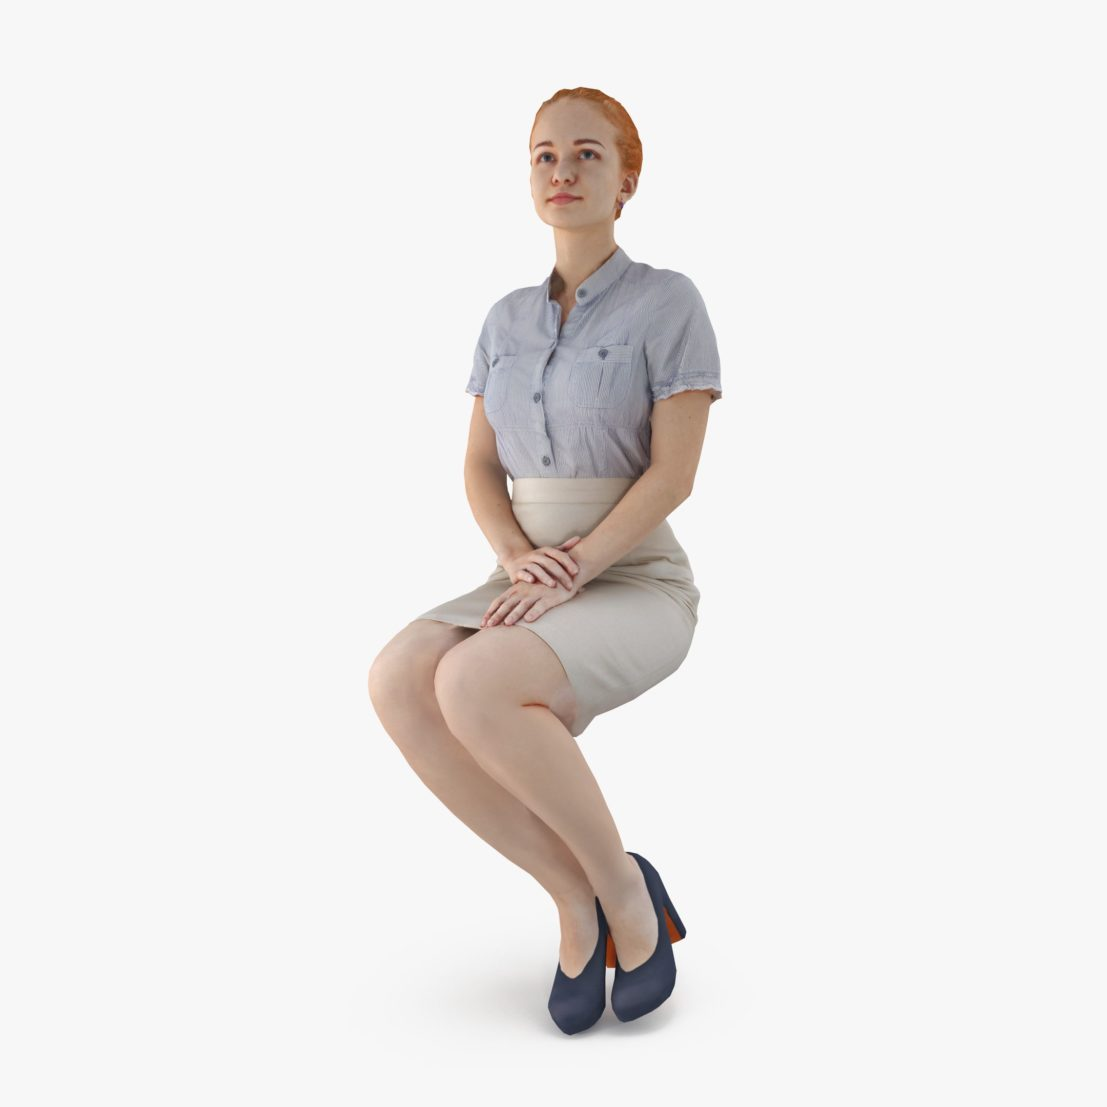 City Lady Sitting 3D Model | 3DTree Scanning Studio